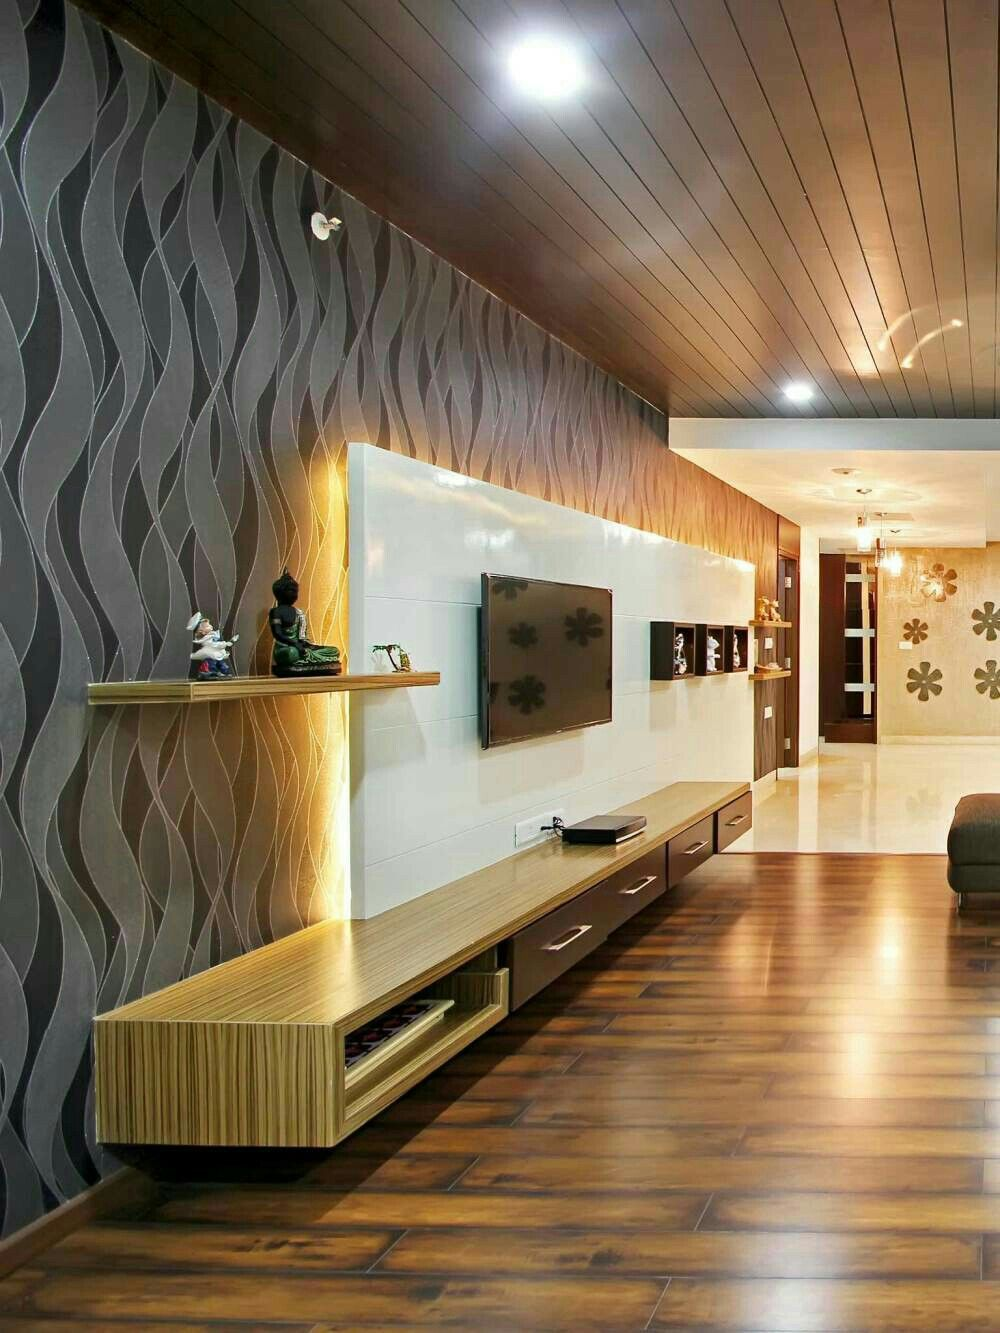 Led Tv Panels Designs For Living Room And Bedrooms: Pin By ANITA BHATT On Interiors